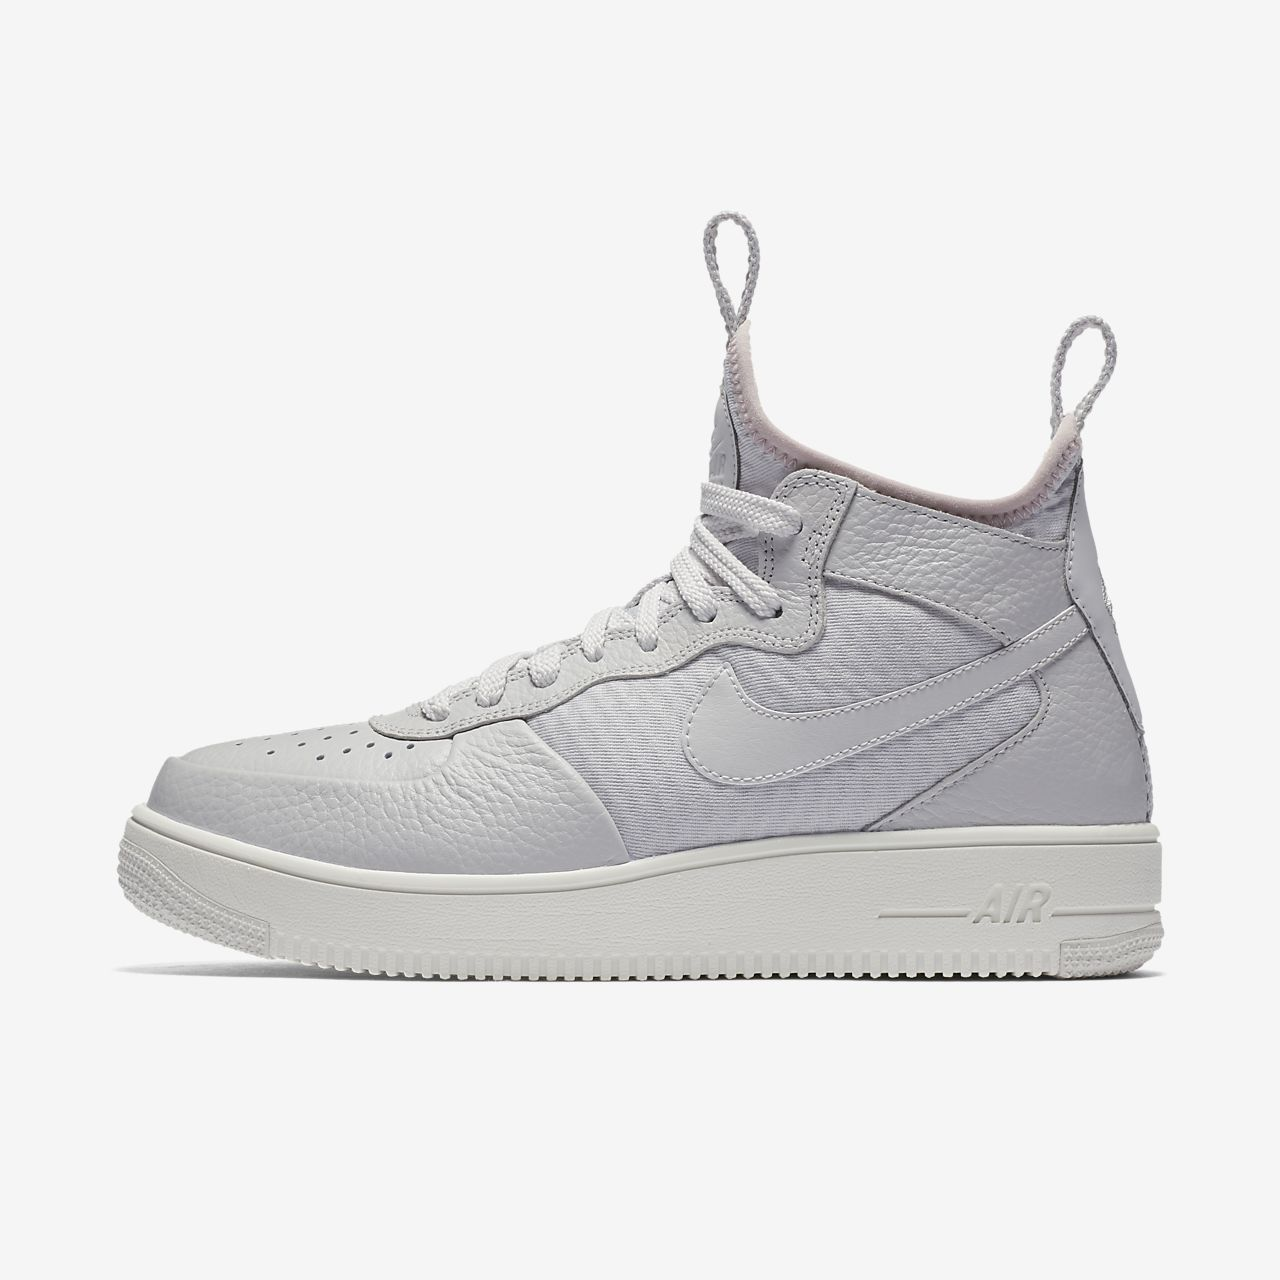 ... Nike Air Force 1 UltraForce Mid Women's Shoe